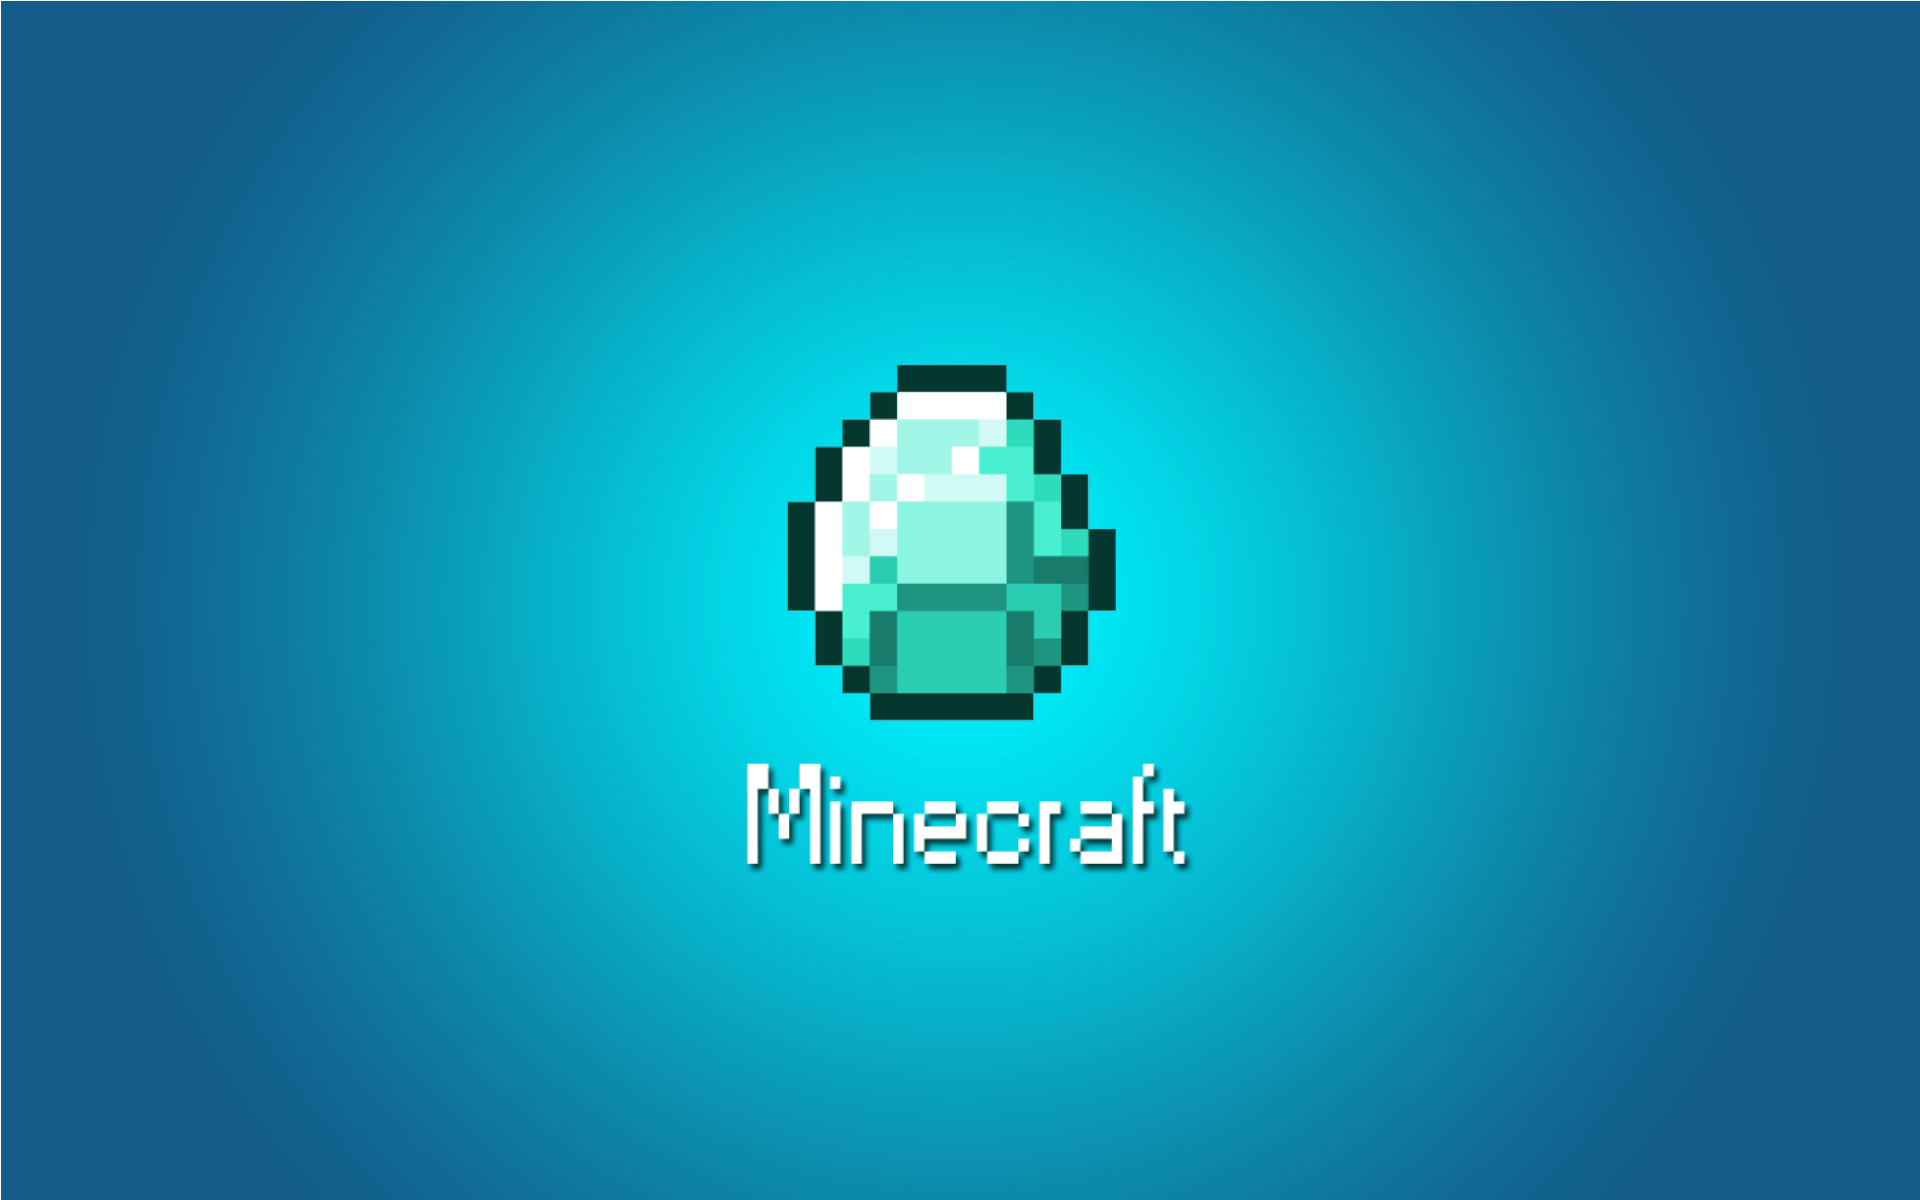 Wallpapers for Minecraft HD Android Apps on Google Play